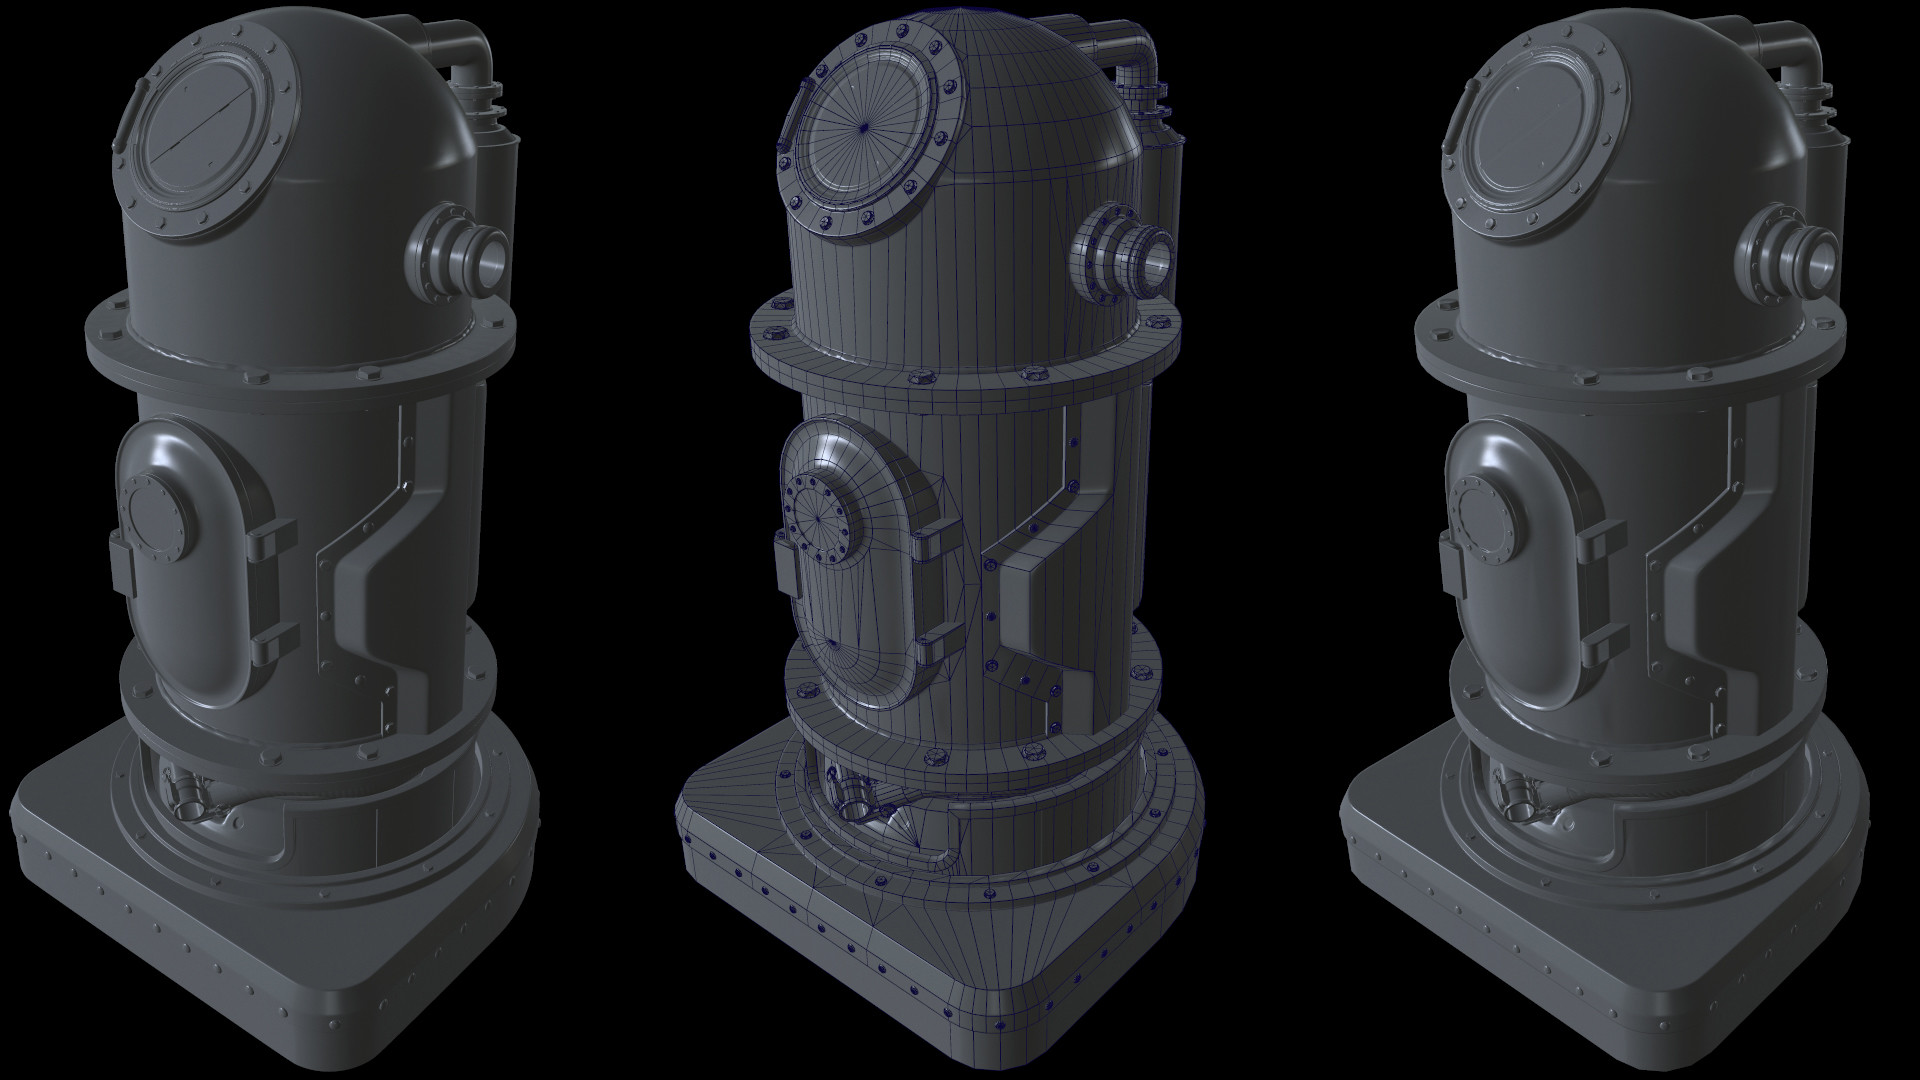 High Poly / Wireframe / Low Poly with Normal